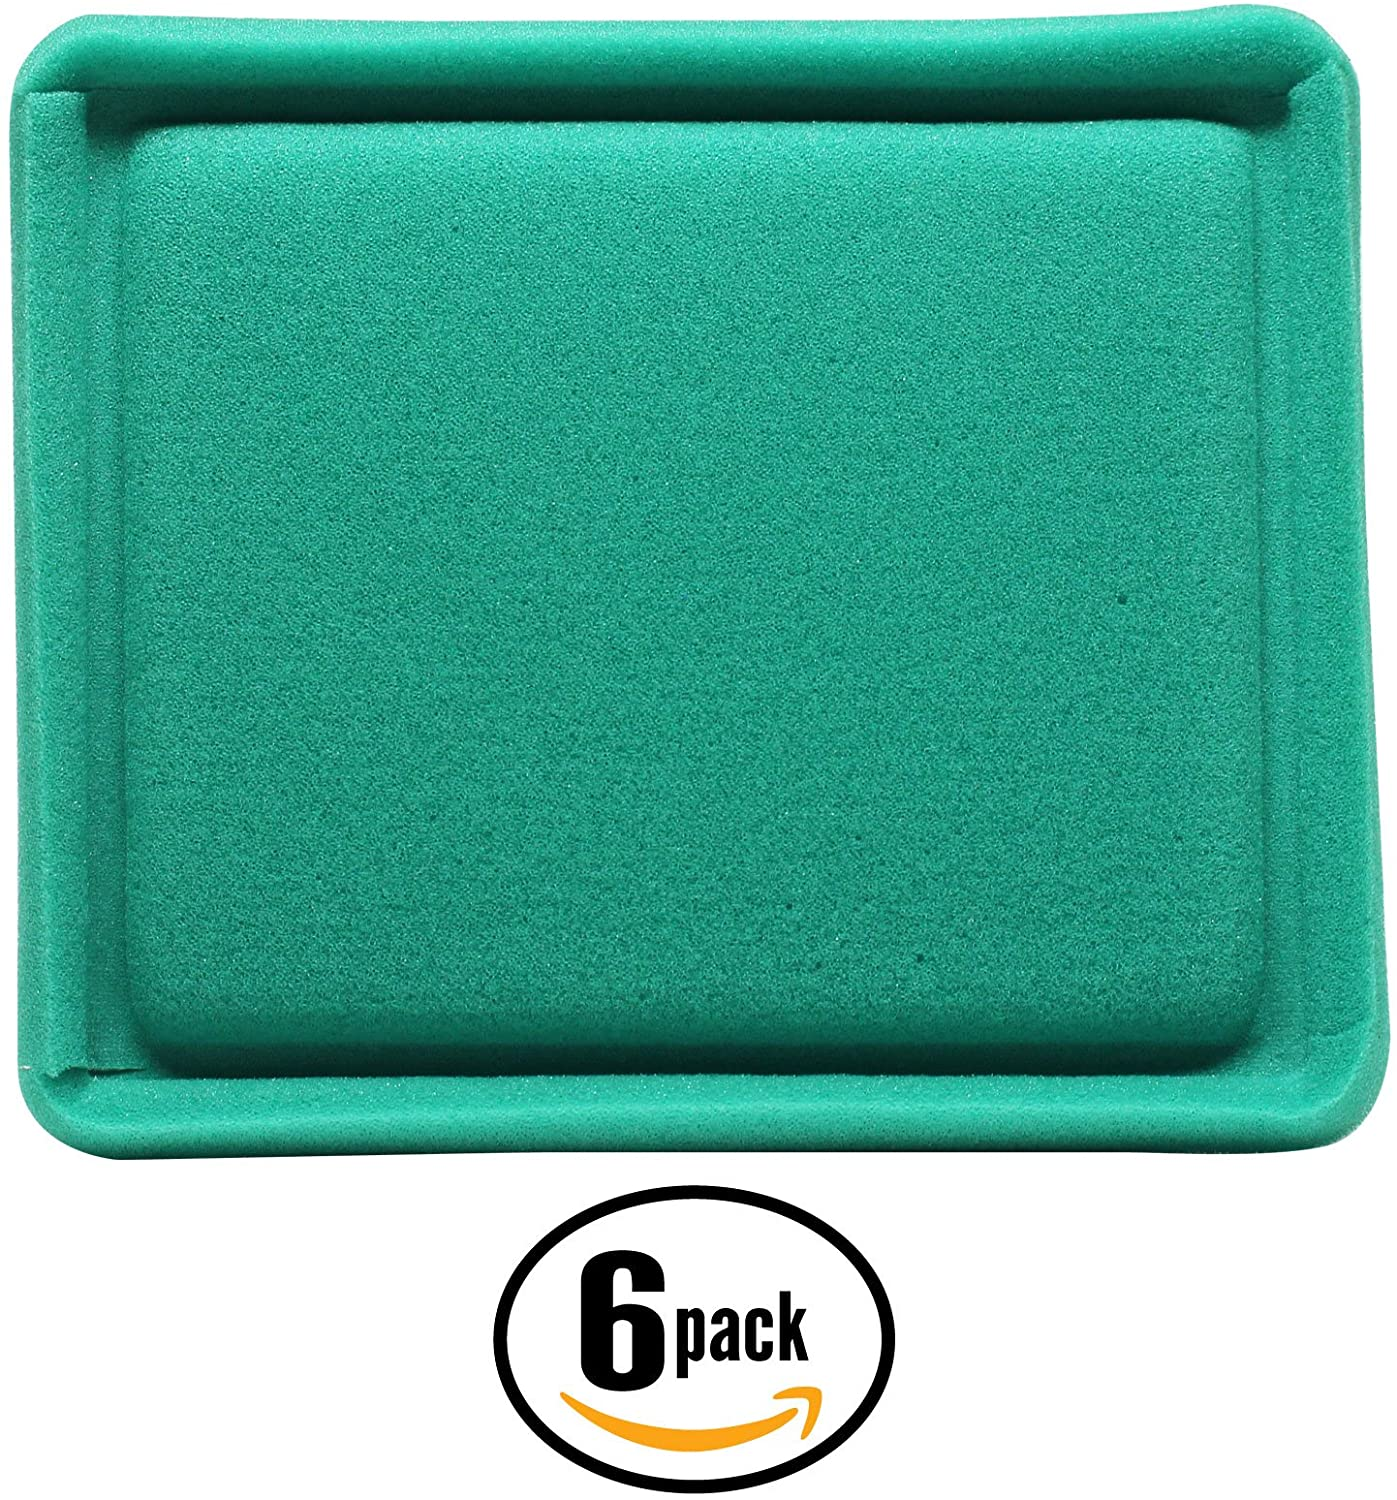 6-Pack Replacement 493537S Filter Pre-Cleaner for John Deere, Toro, Briggs & Stratton - Compatible with John Deere Js20, John Deere Js30, John Deere 14pz, John Deere 14sz, Toro 20323